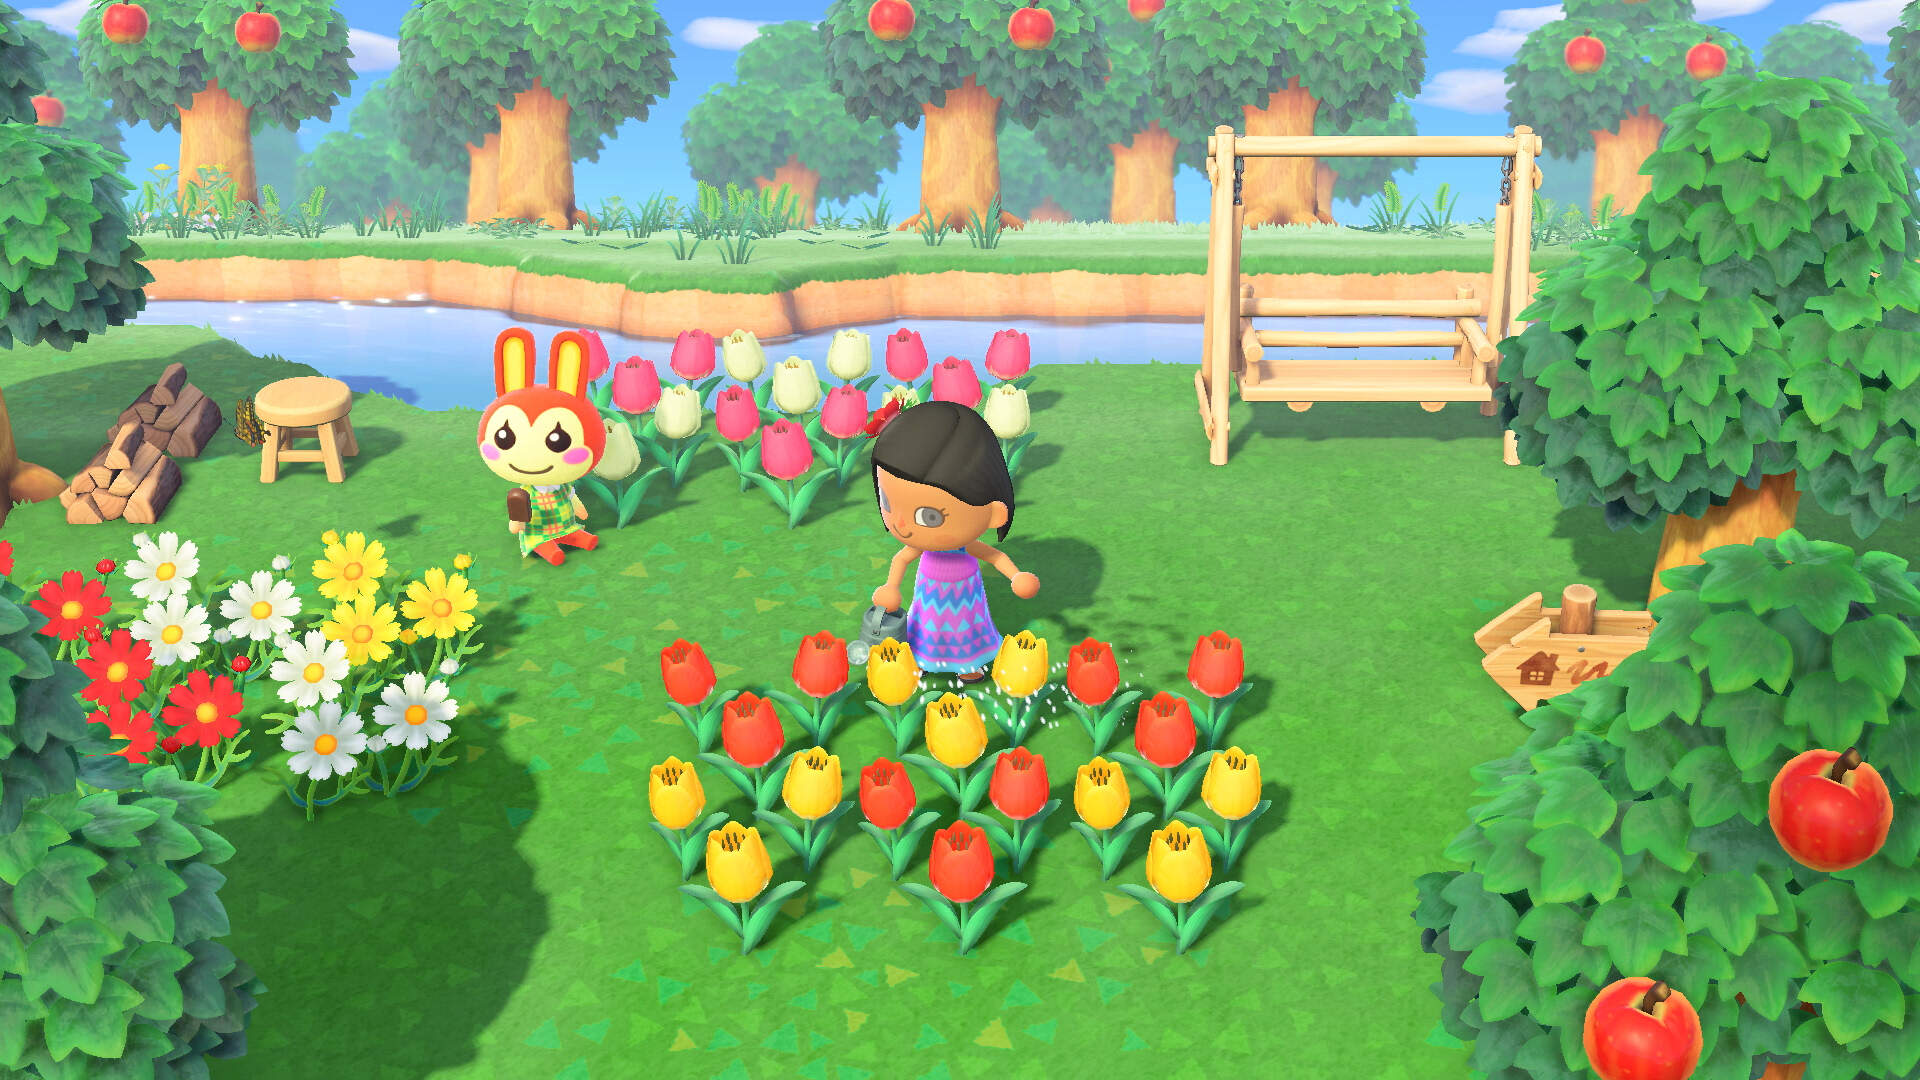 Animal Crossing New Horizons: How to Increase Inventory/Pocket Space